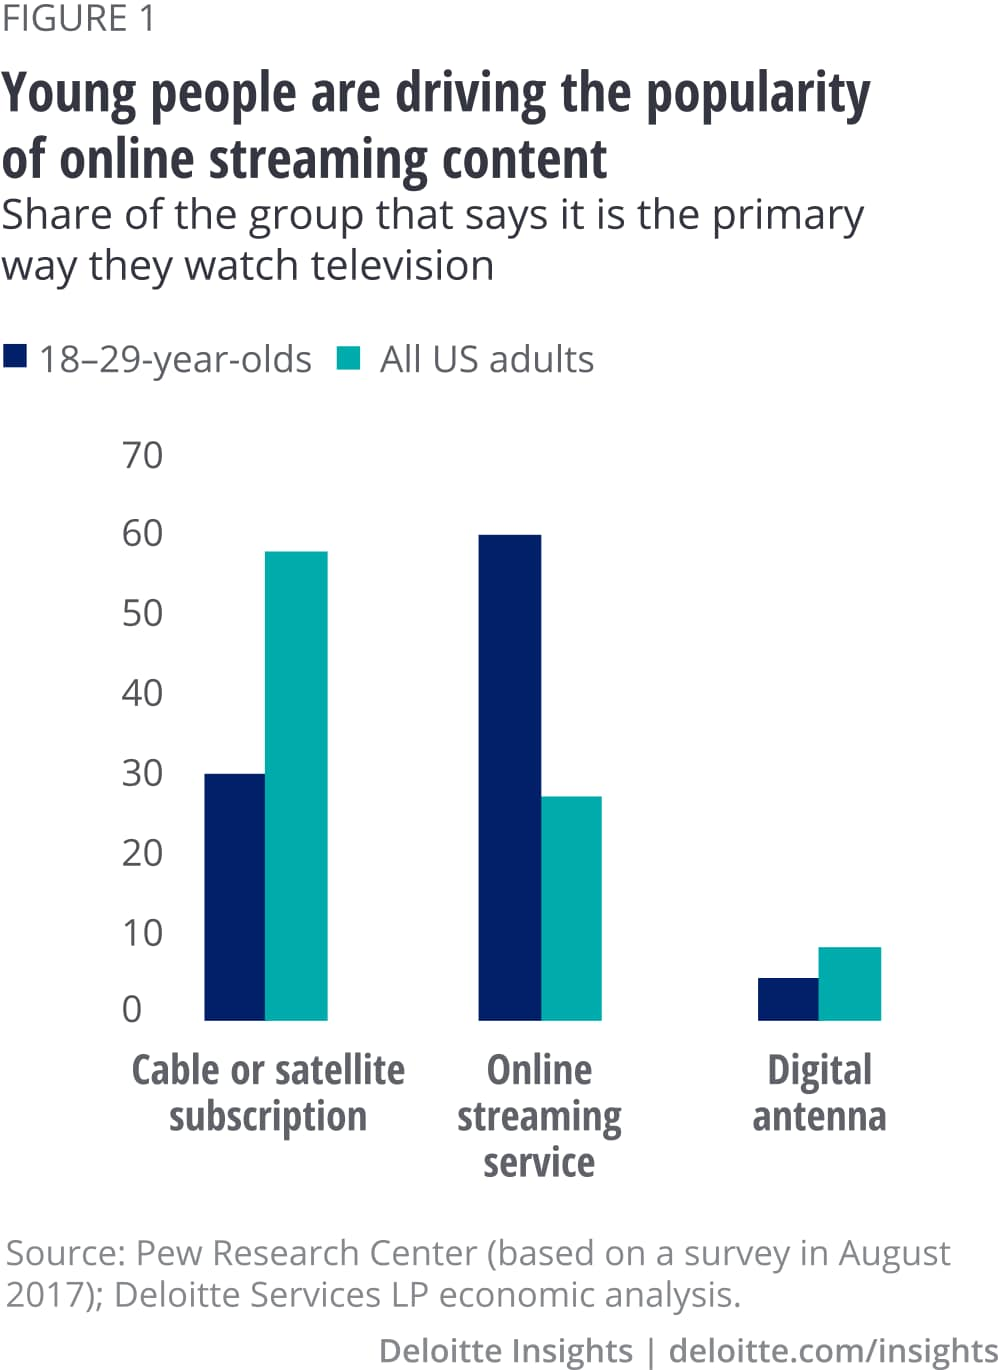 Young people are driving the popularity of online streaming content